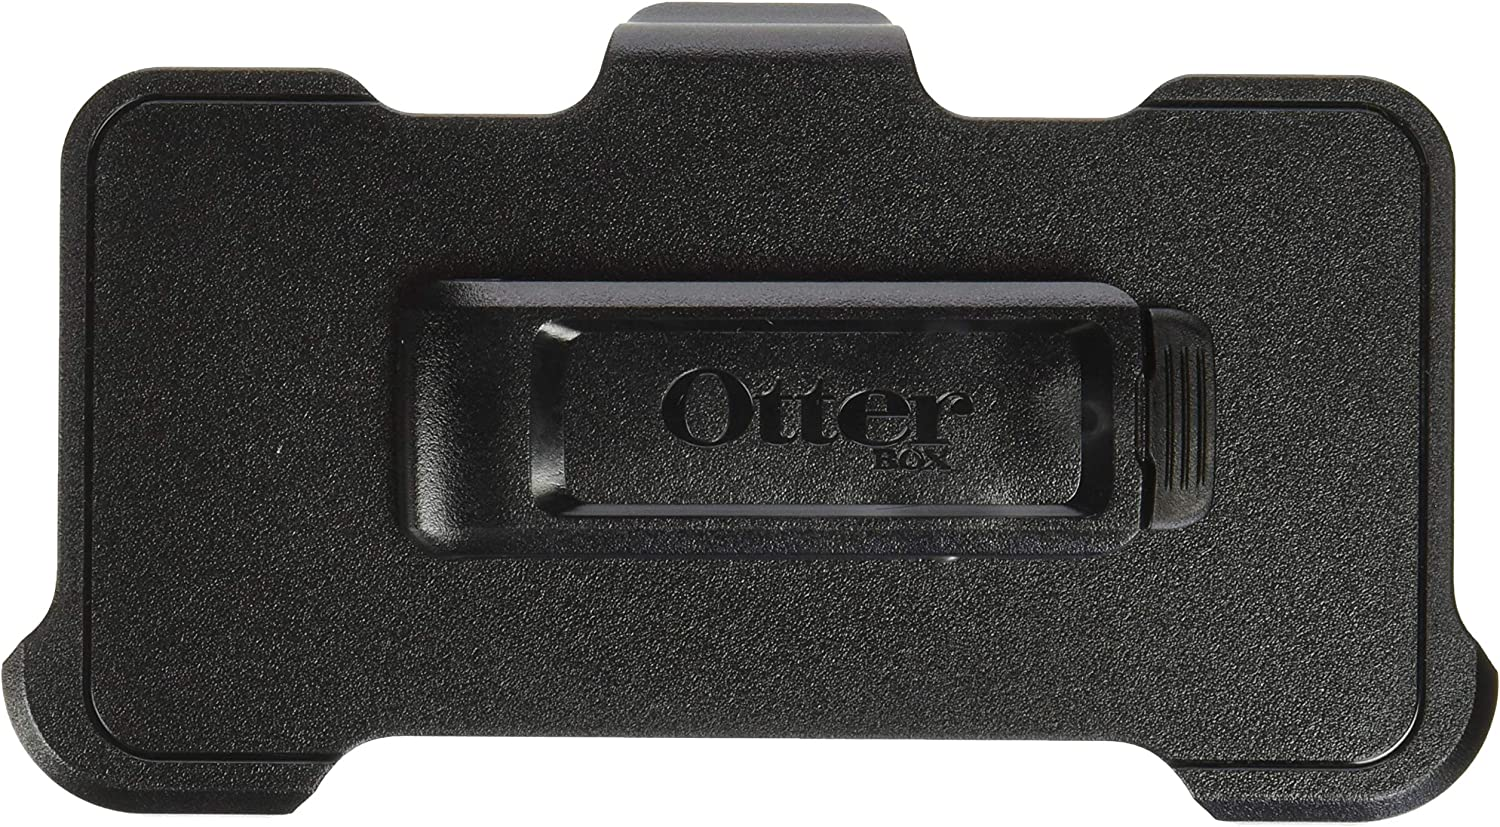 OtterBox Holster Belt Clip for Defender Series for iPhone SE (2020), iPhone 8, iPhone 7 (NOT Plus) - Black - Bulk Packaging - Not for Stand-Alone Use